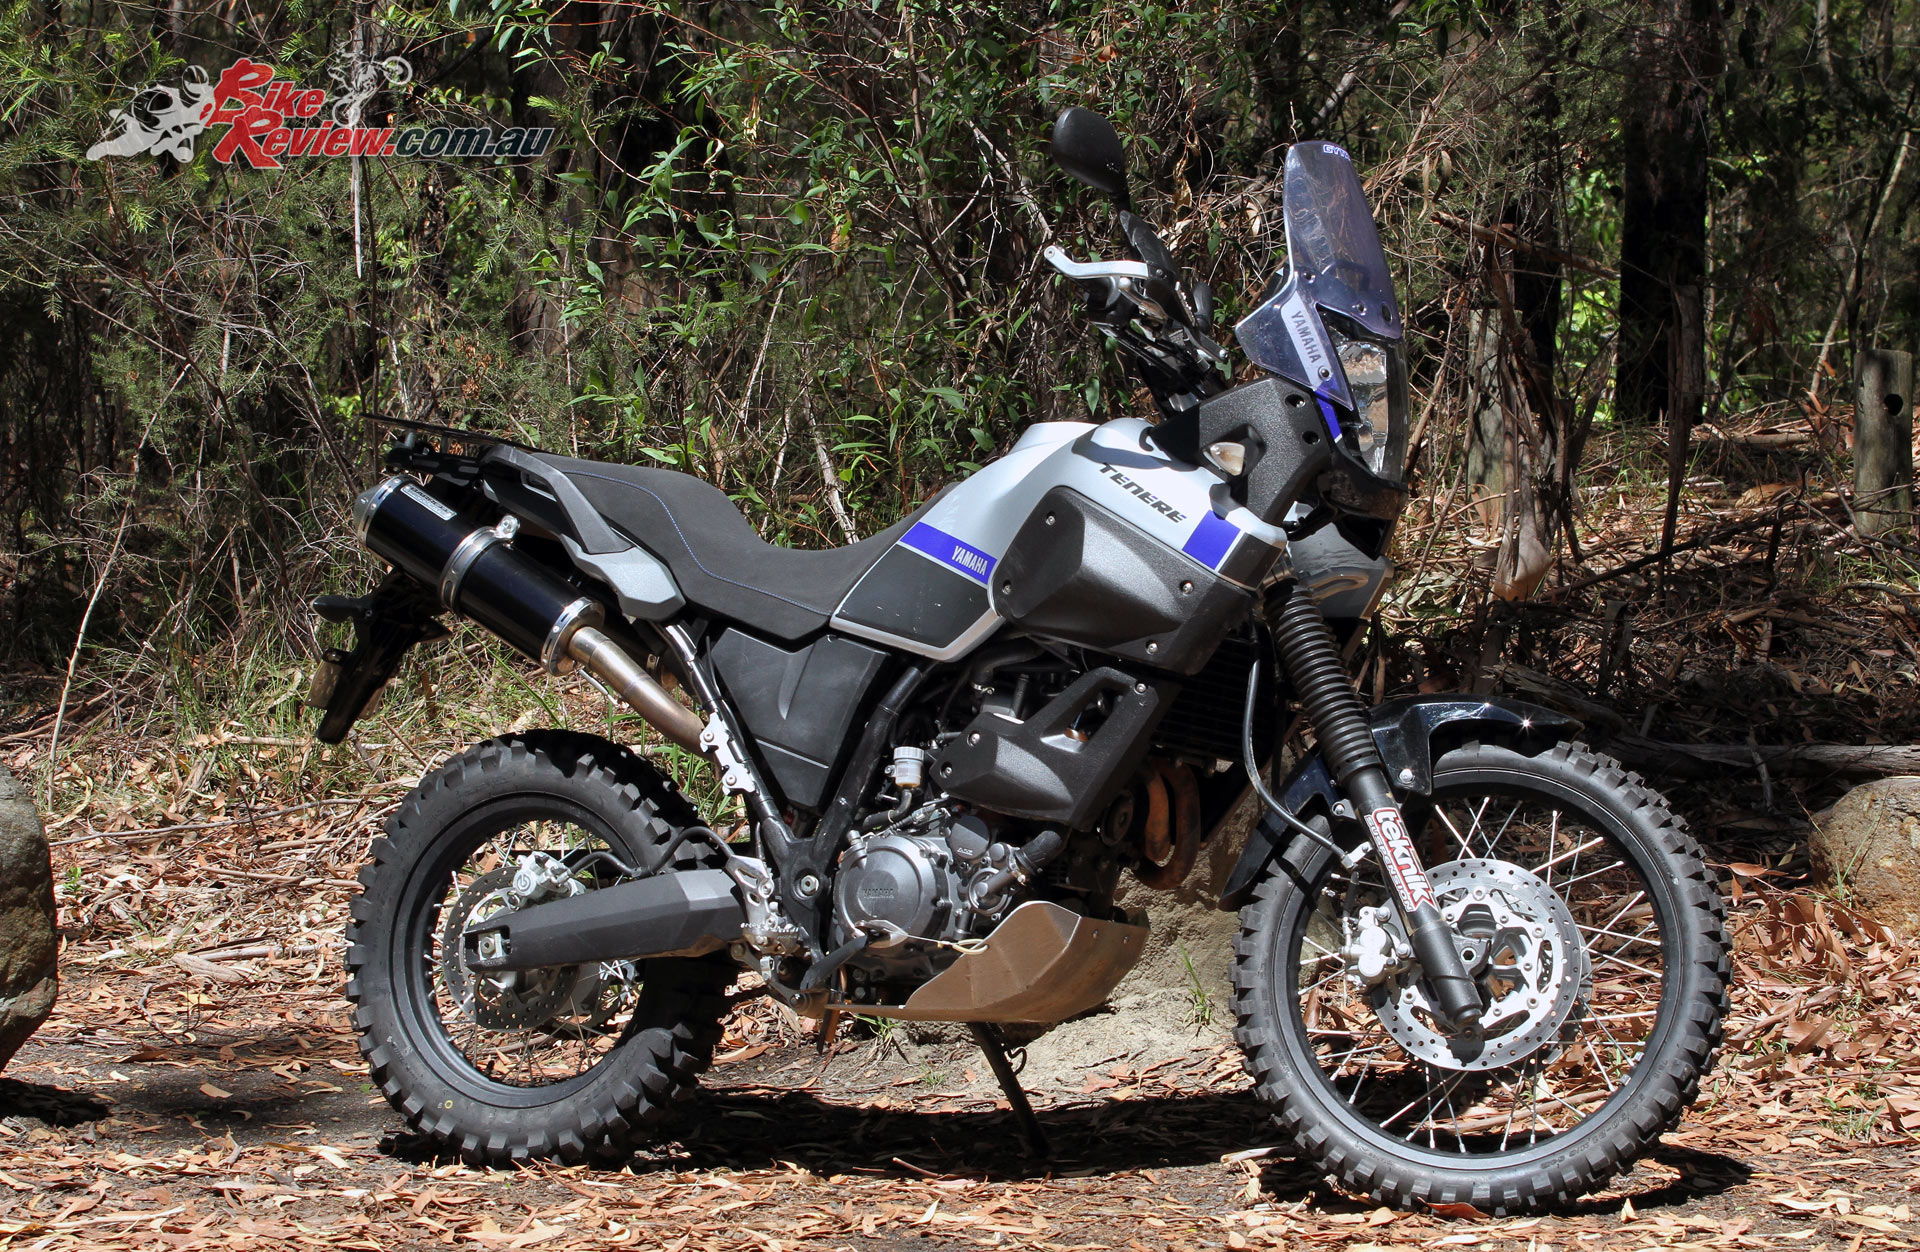 Honda Riding Gear >> Review: 2016 Yamaha Tenere XTZ660 - Bike Review